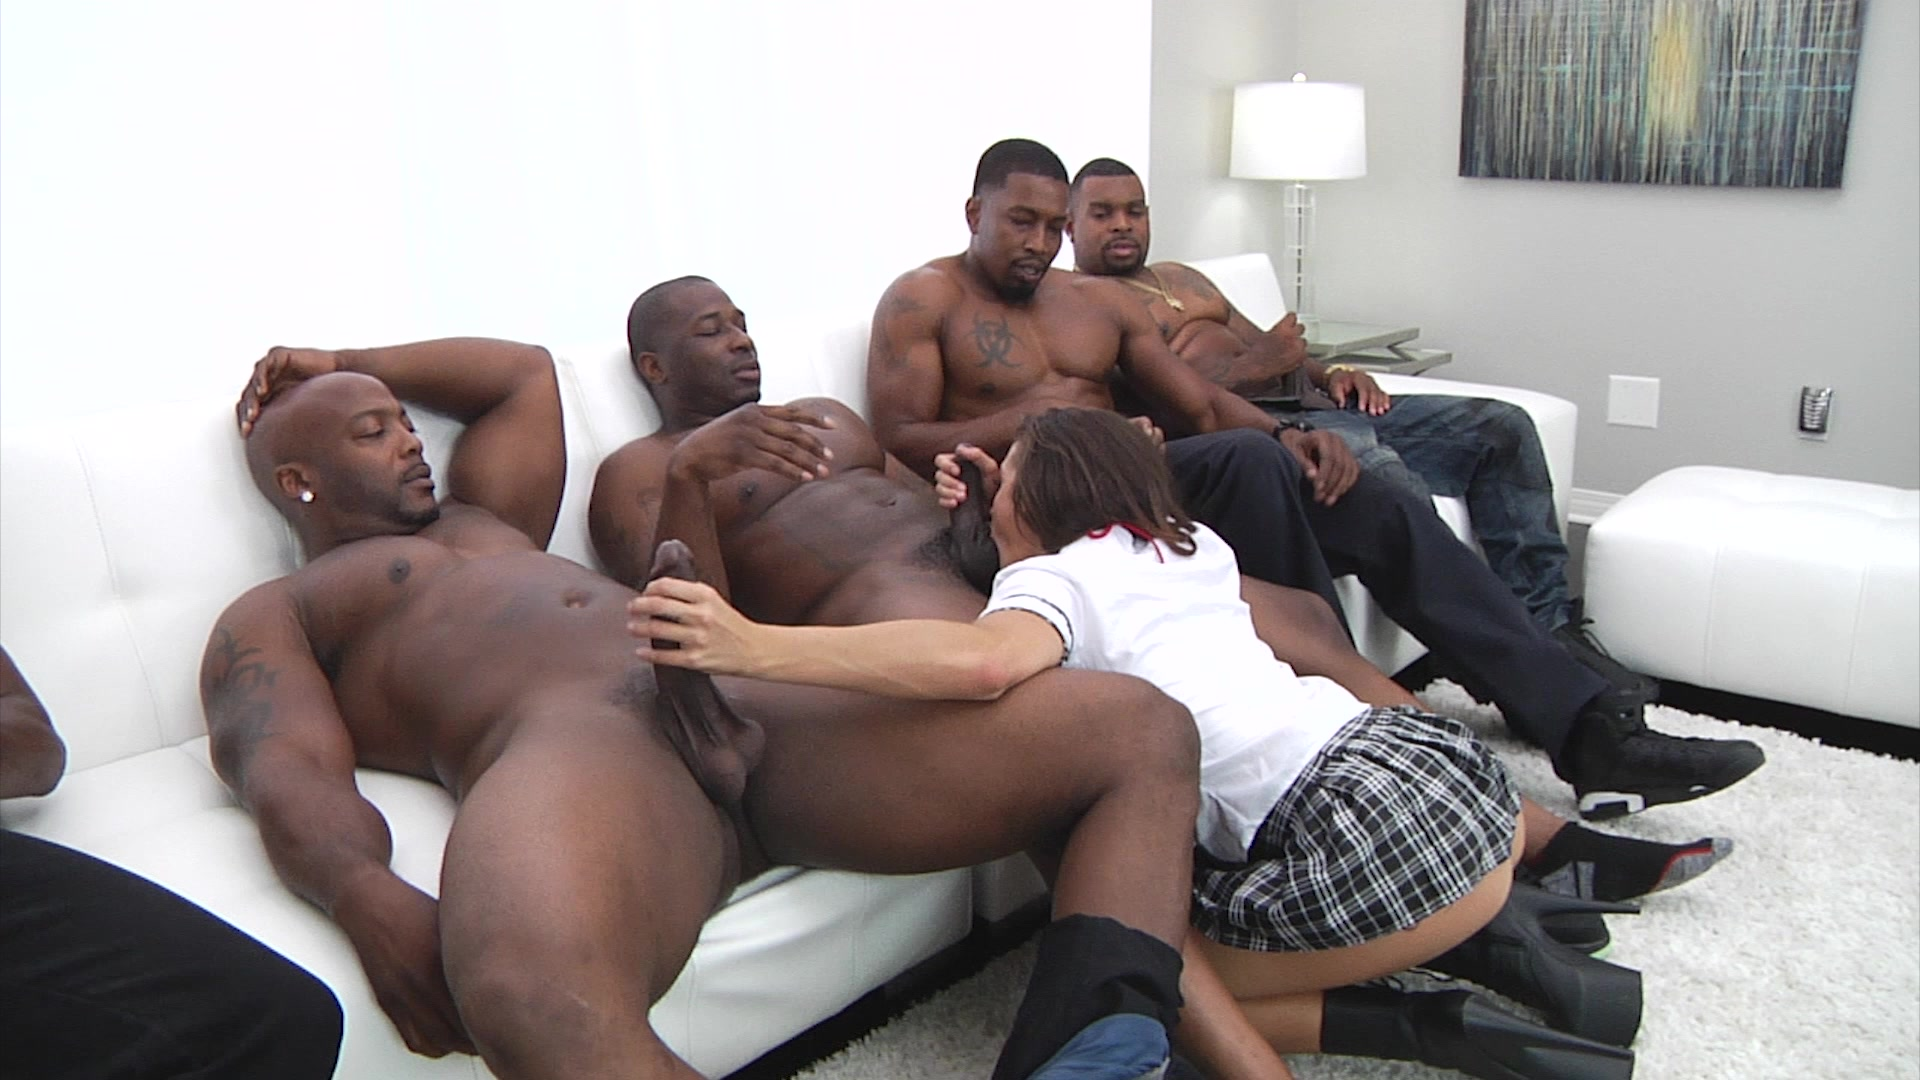 Orgy sex party pics